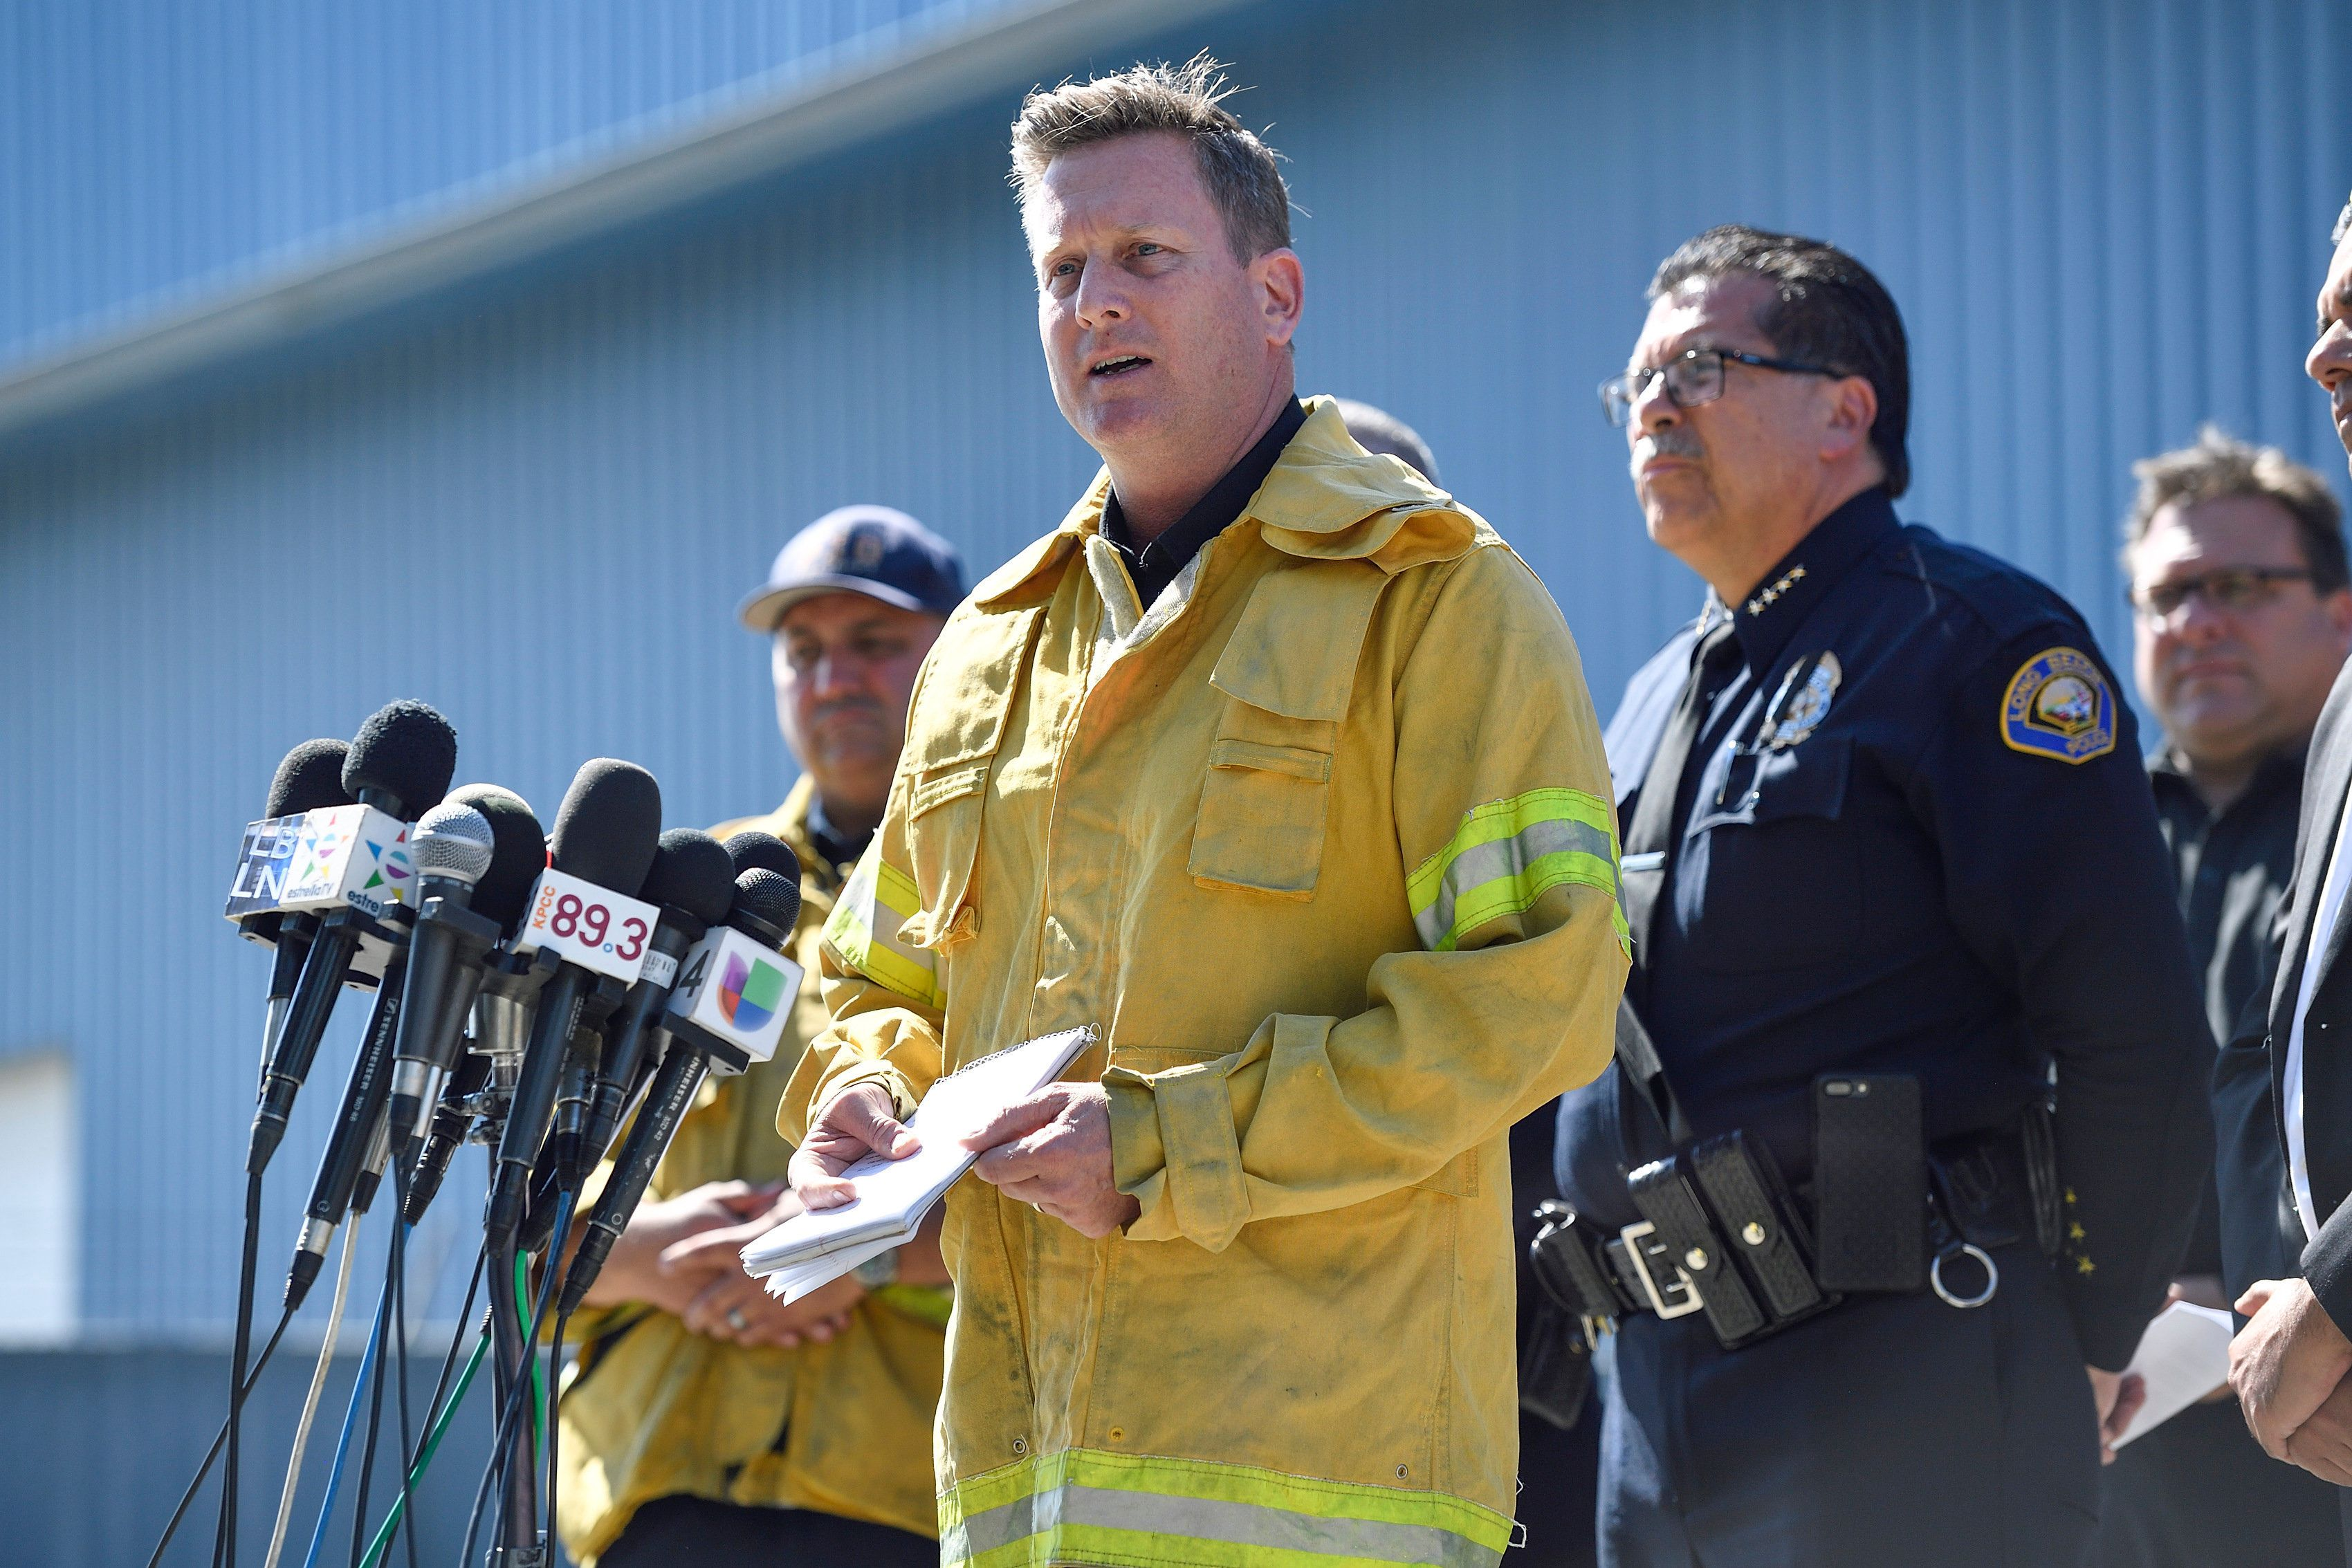 LONG BEACH, CA - JUNE 25: Long Beach Fire Chief Mike Duree during a press conference after Fire Captain Dave Rosa, 45, was shot and killed responding to a fire in Long Beach, CA, on Monday, June 25, 2018. Rosa and another firefighter were struck by gunfire while responding to reports of an explosion at a downtown Long Beach high-rise. (Photo by Jeff Gritchen/Orange County Register via Getty Images)